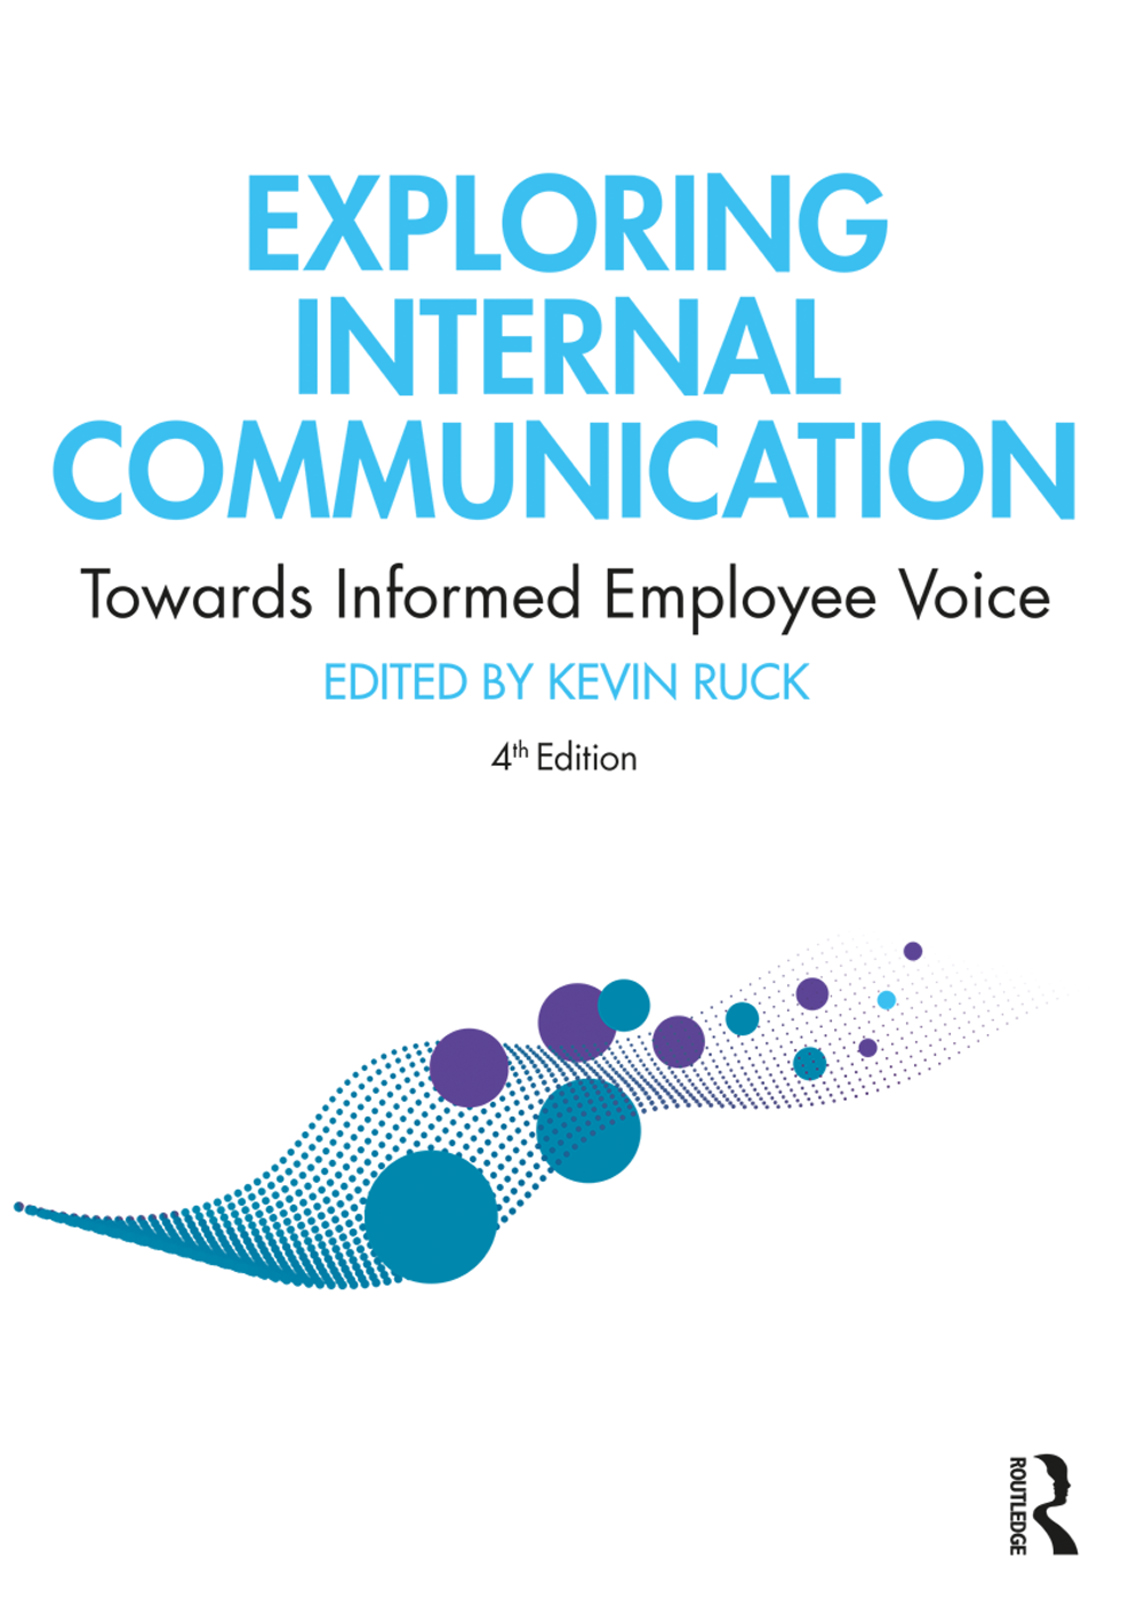 Exploring Internal Communication: Towards Informed Employee Voice book cover